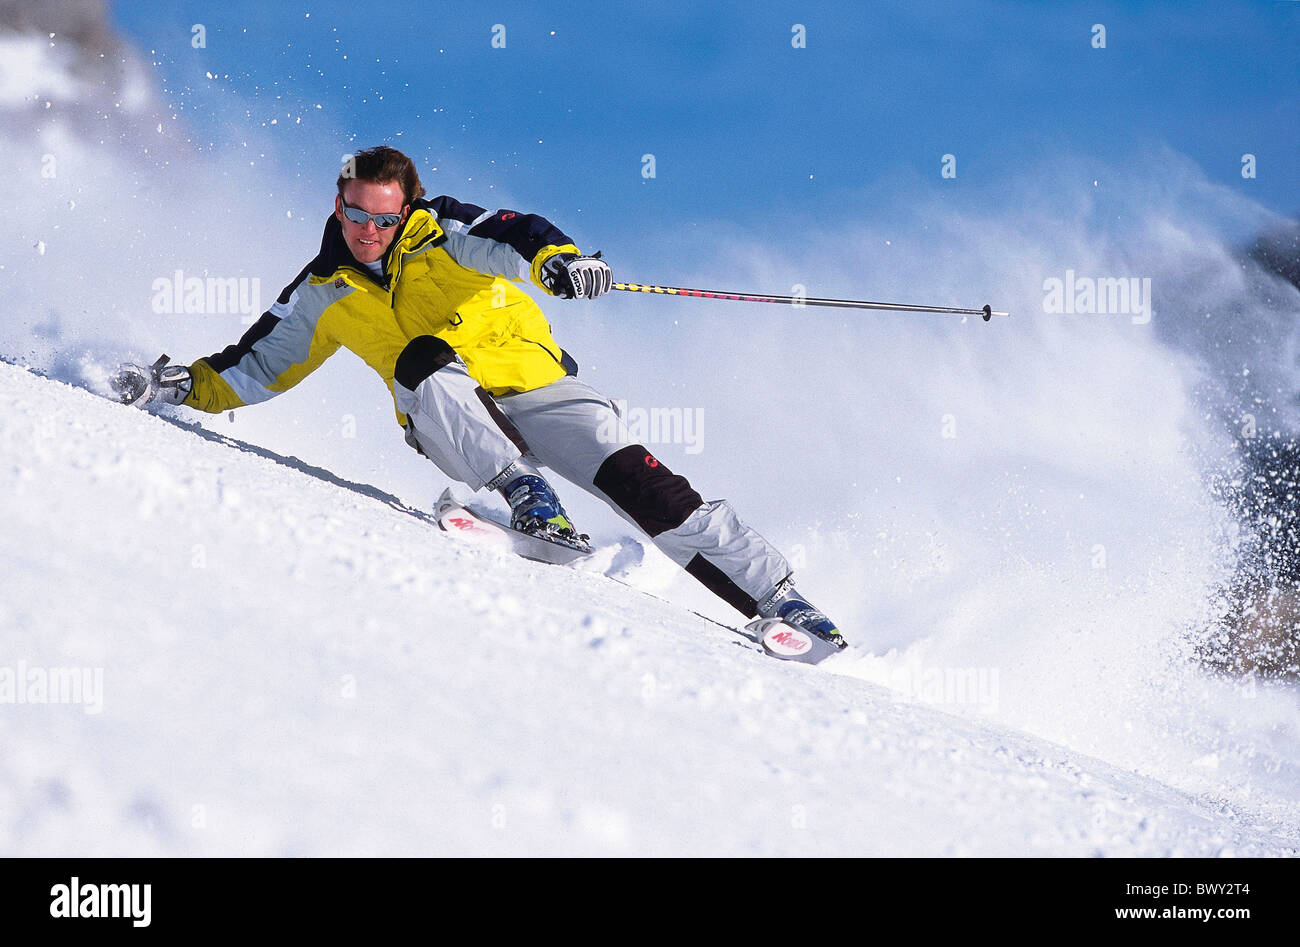 Action carving ski carvingski man snow skiing sport